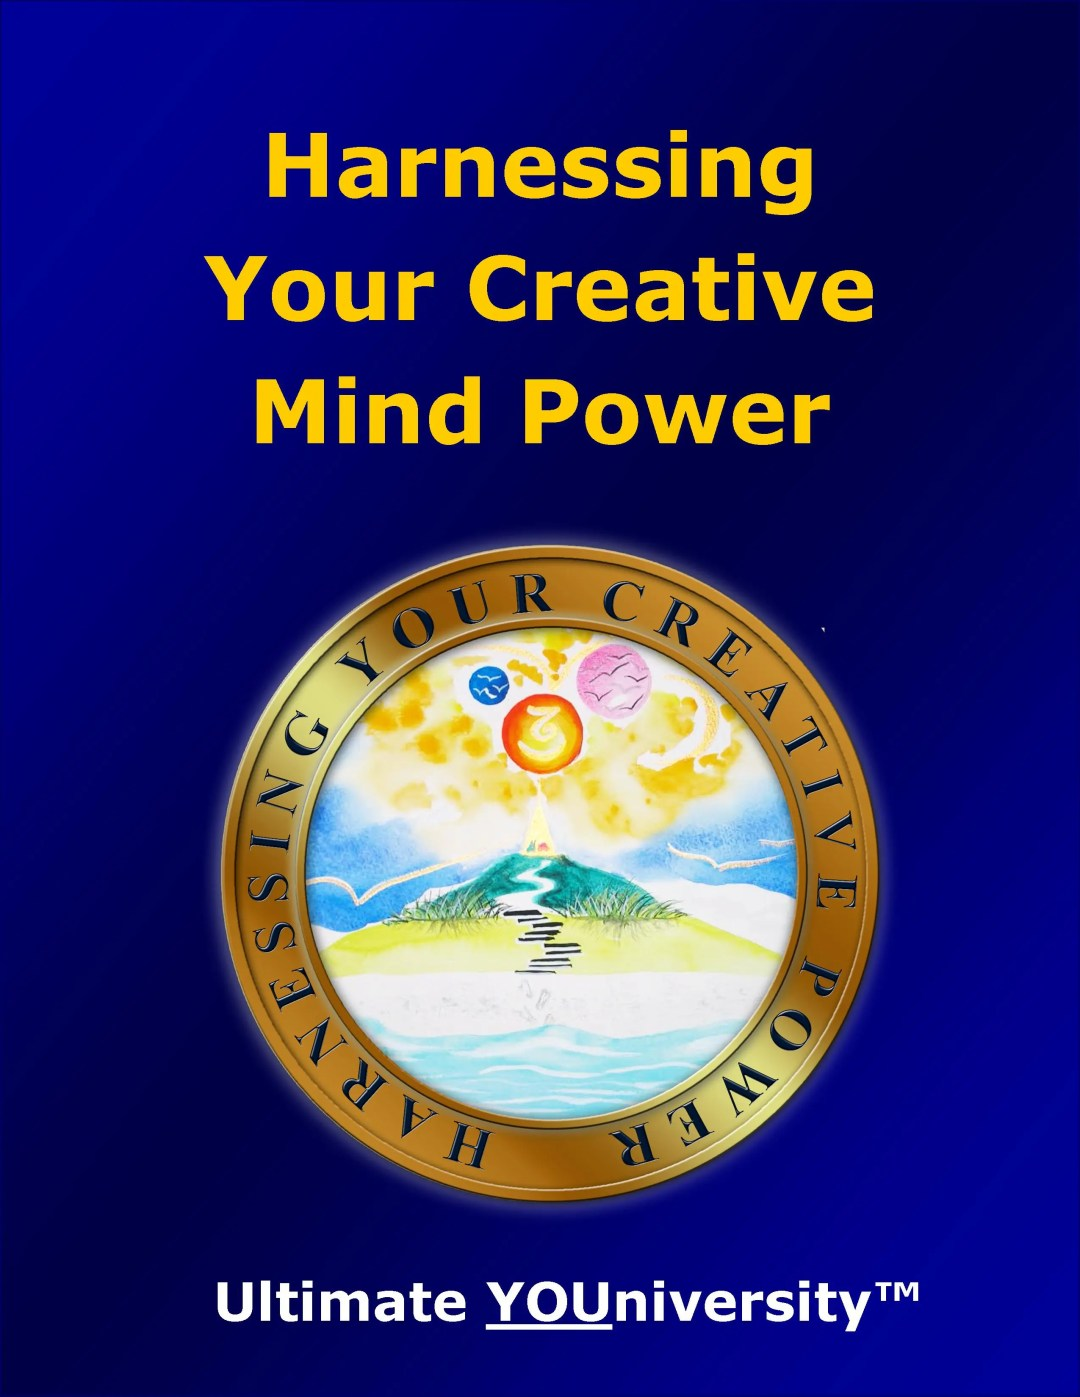 Harnessing Your Creative Power, one of the 14 Categories